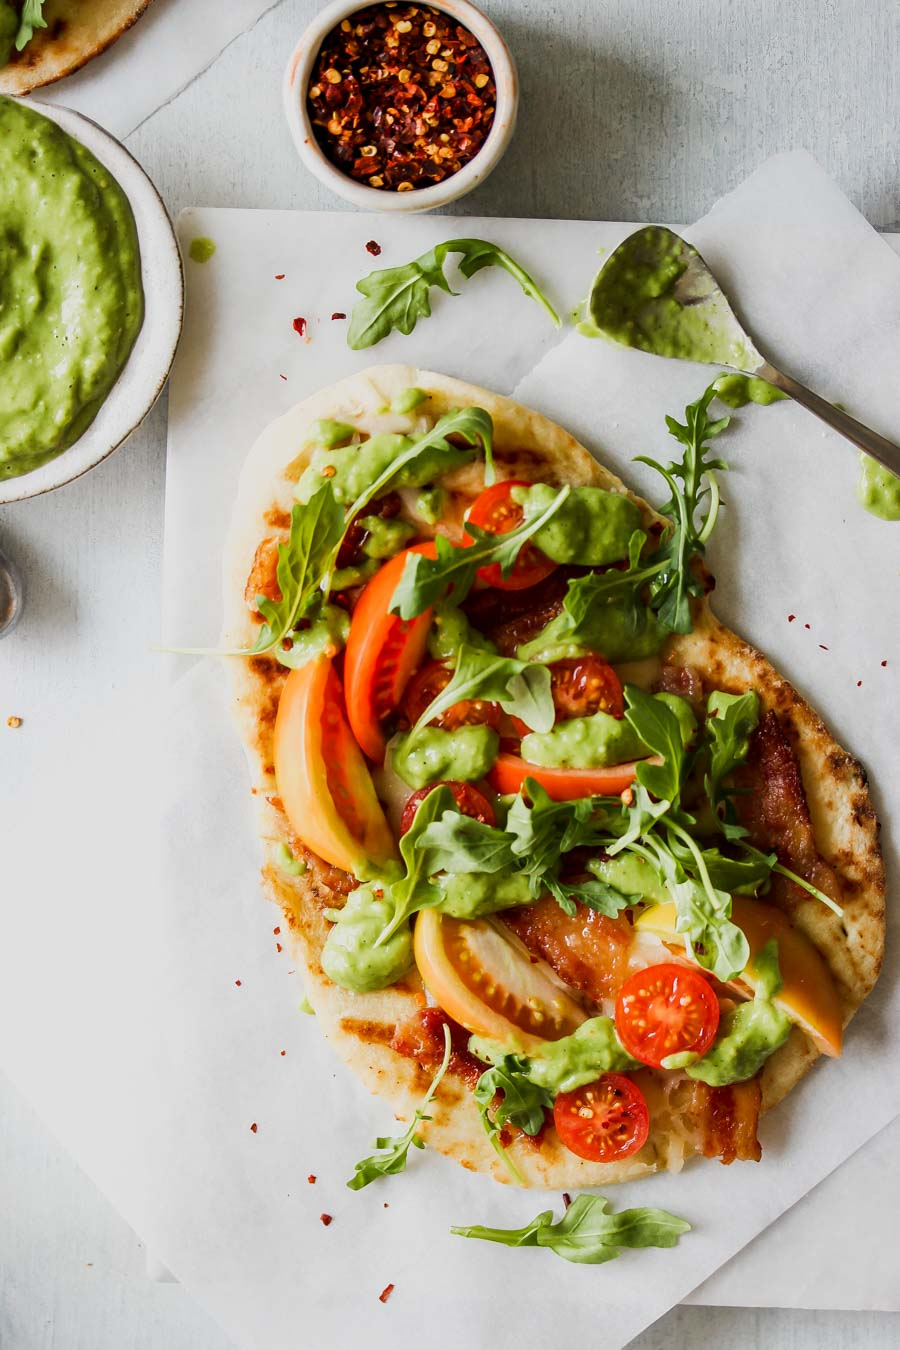 BLT Naan Flatbreads with Creamy Tomatillo Sauce